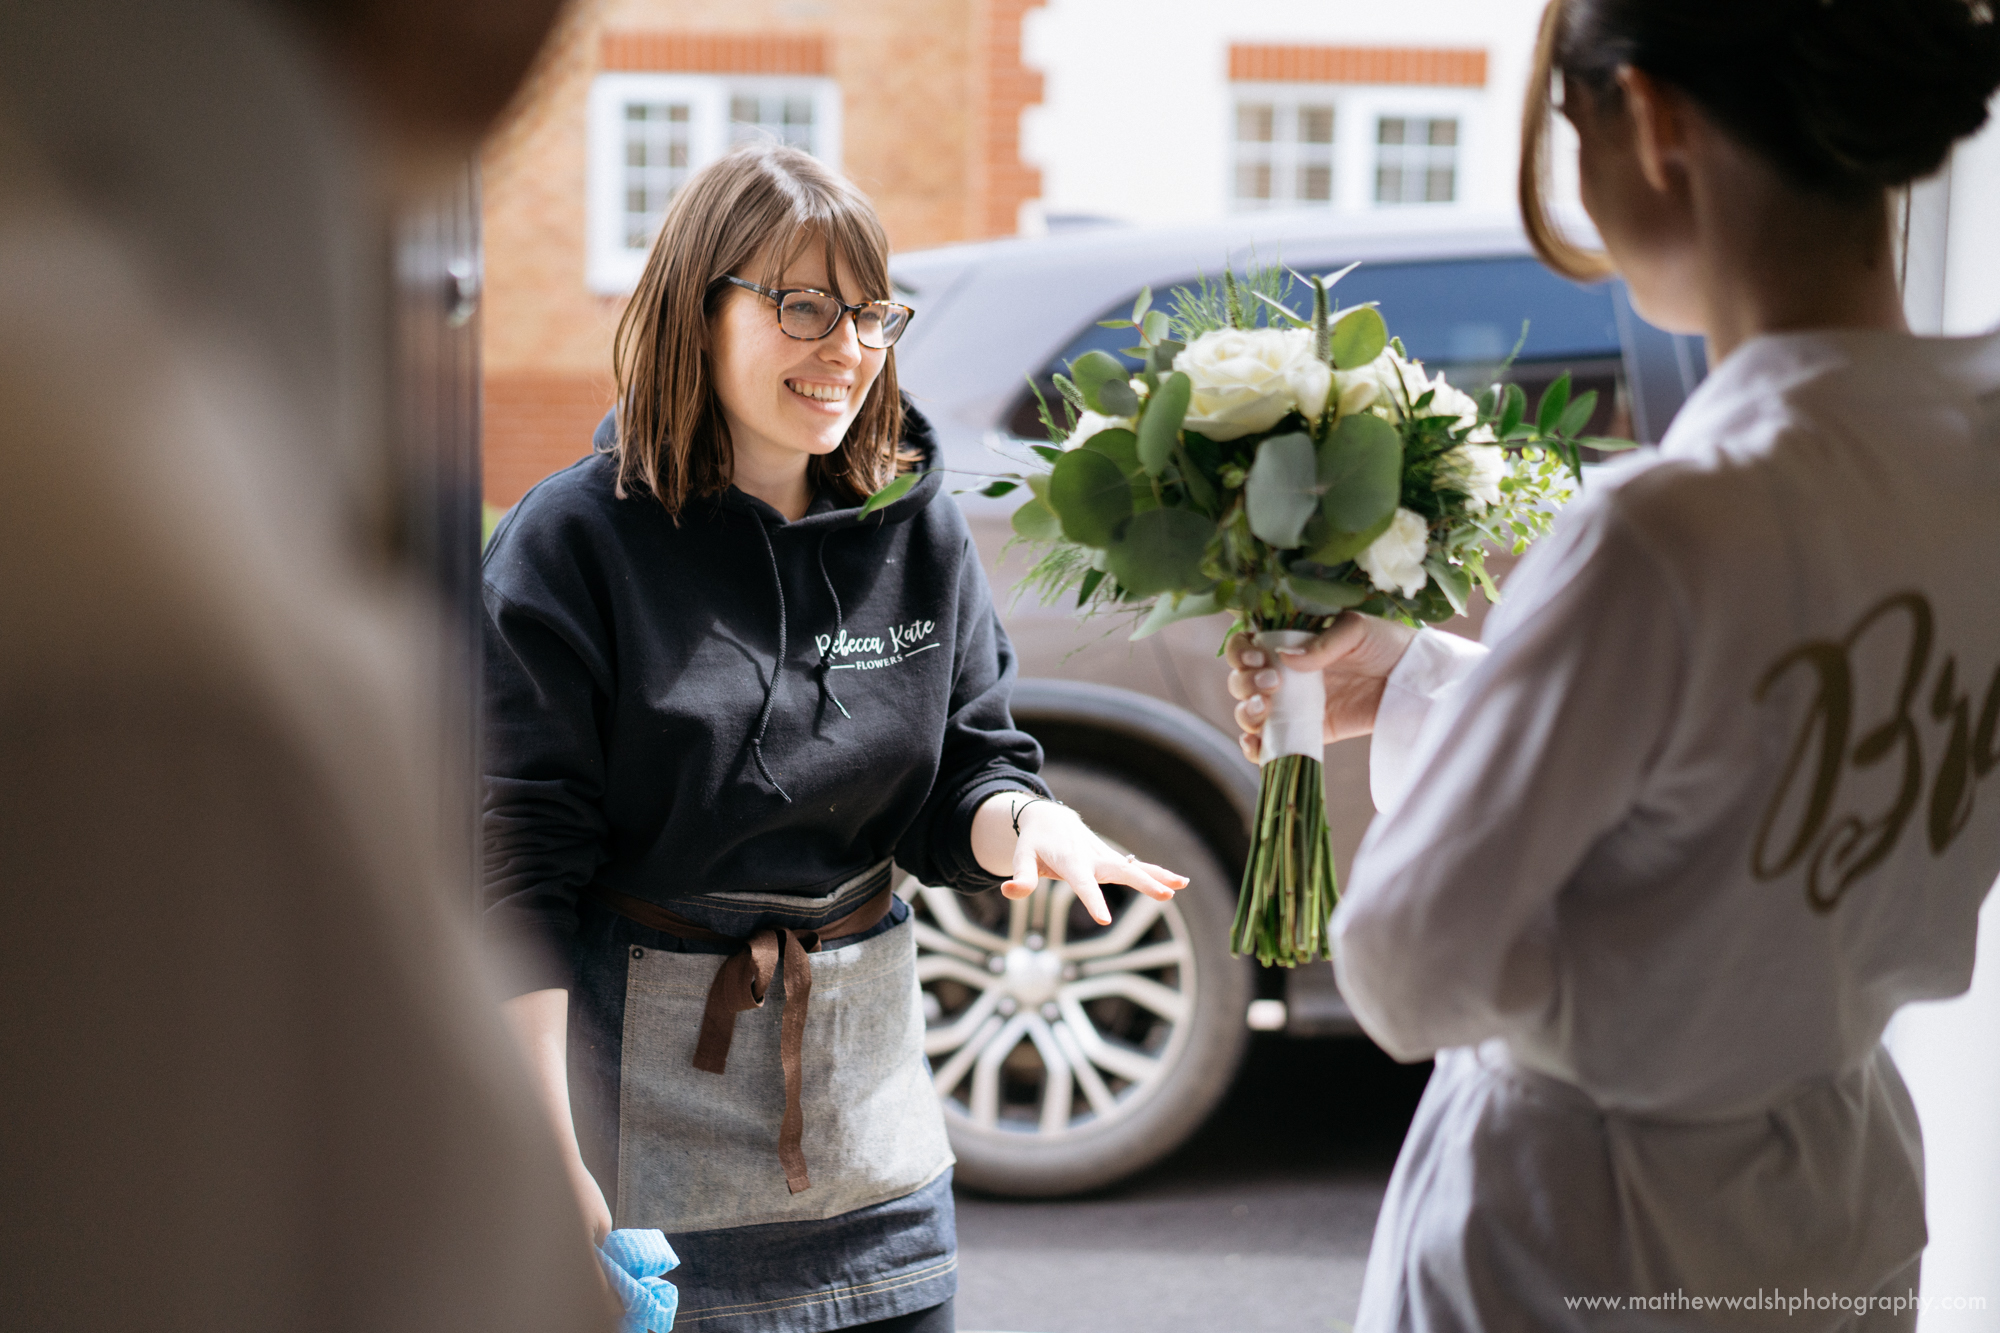 The florist Rebecca Kate Flowers arrives with the brides bouquet and other flowers